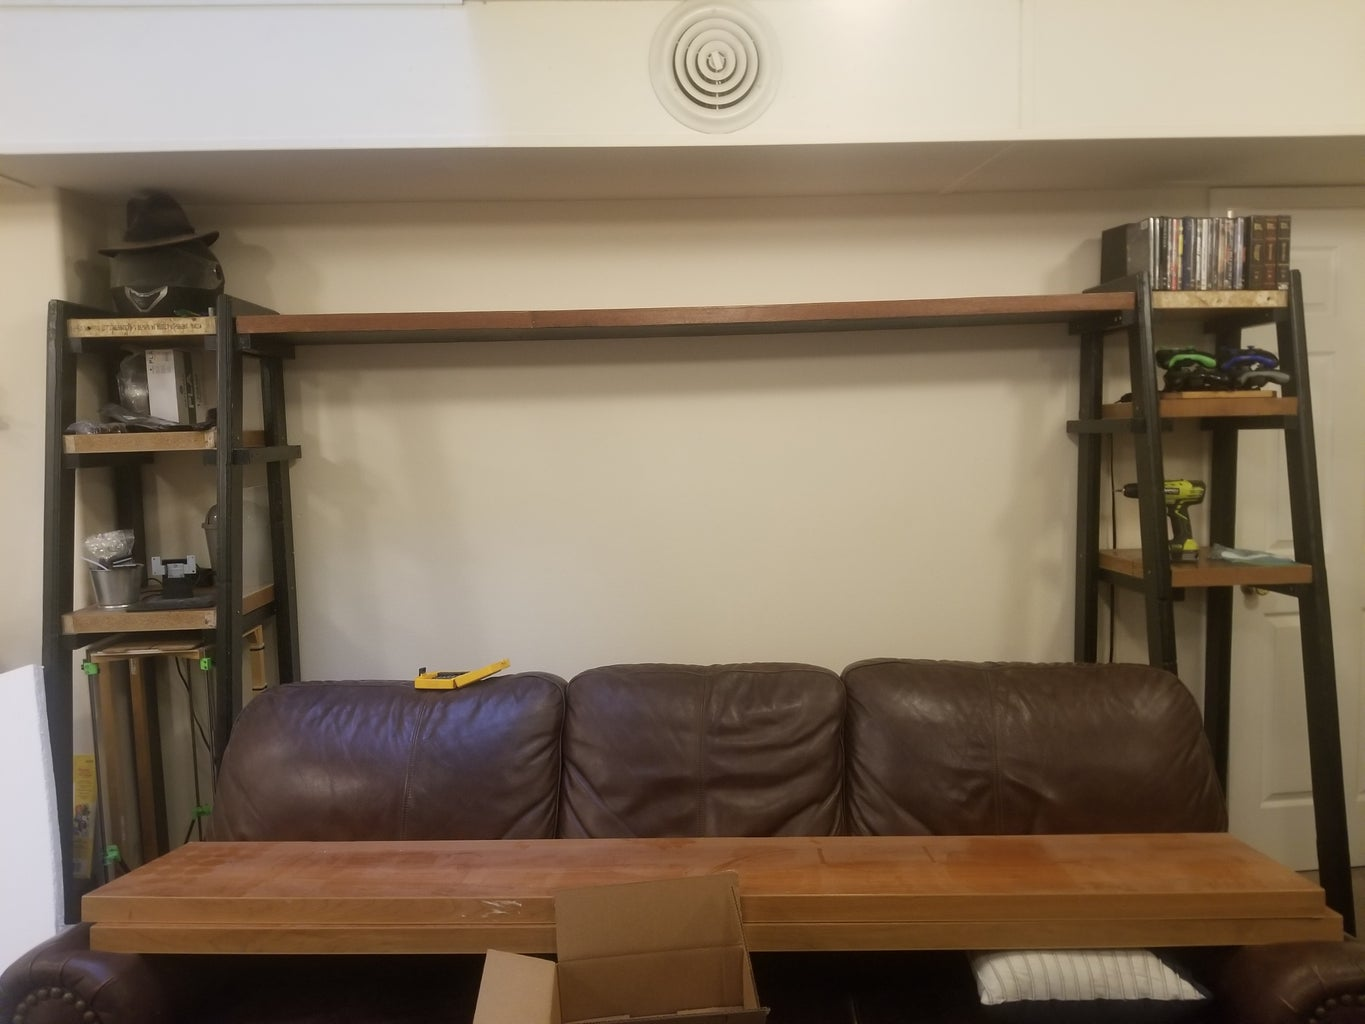 New Shelves With an Eidson Twist